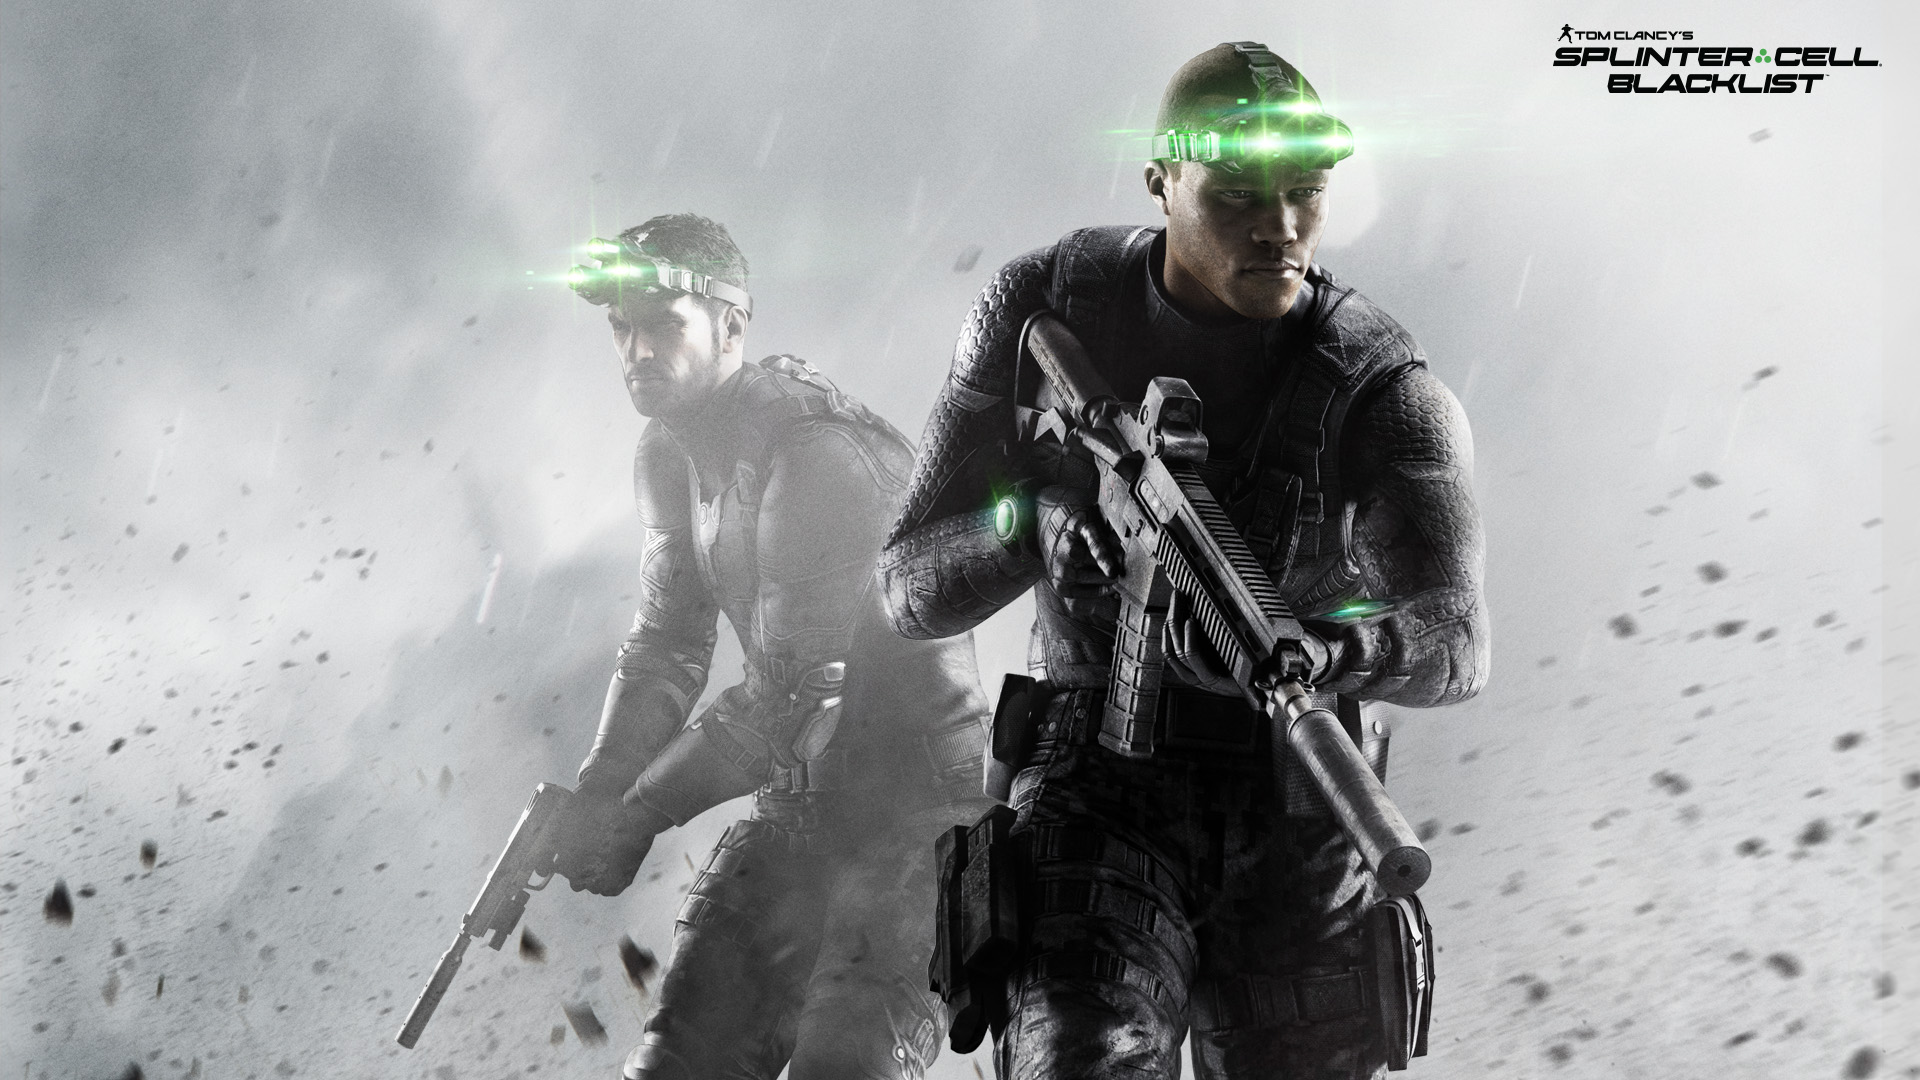 Two wallpapers from video game Splinter Cell:Blacklist ...